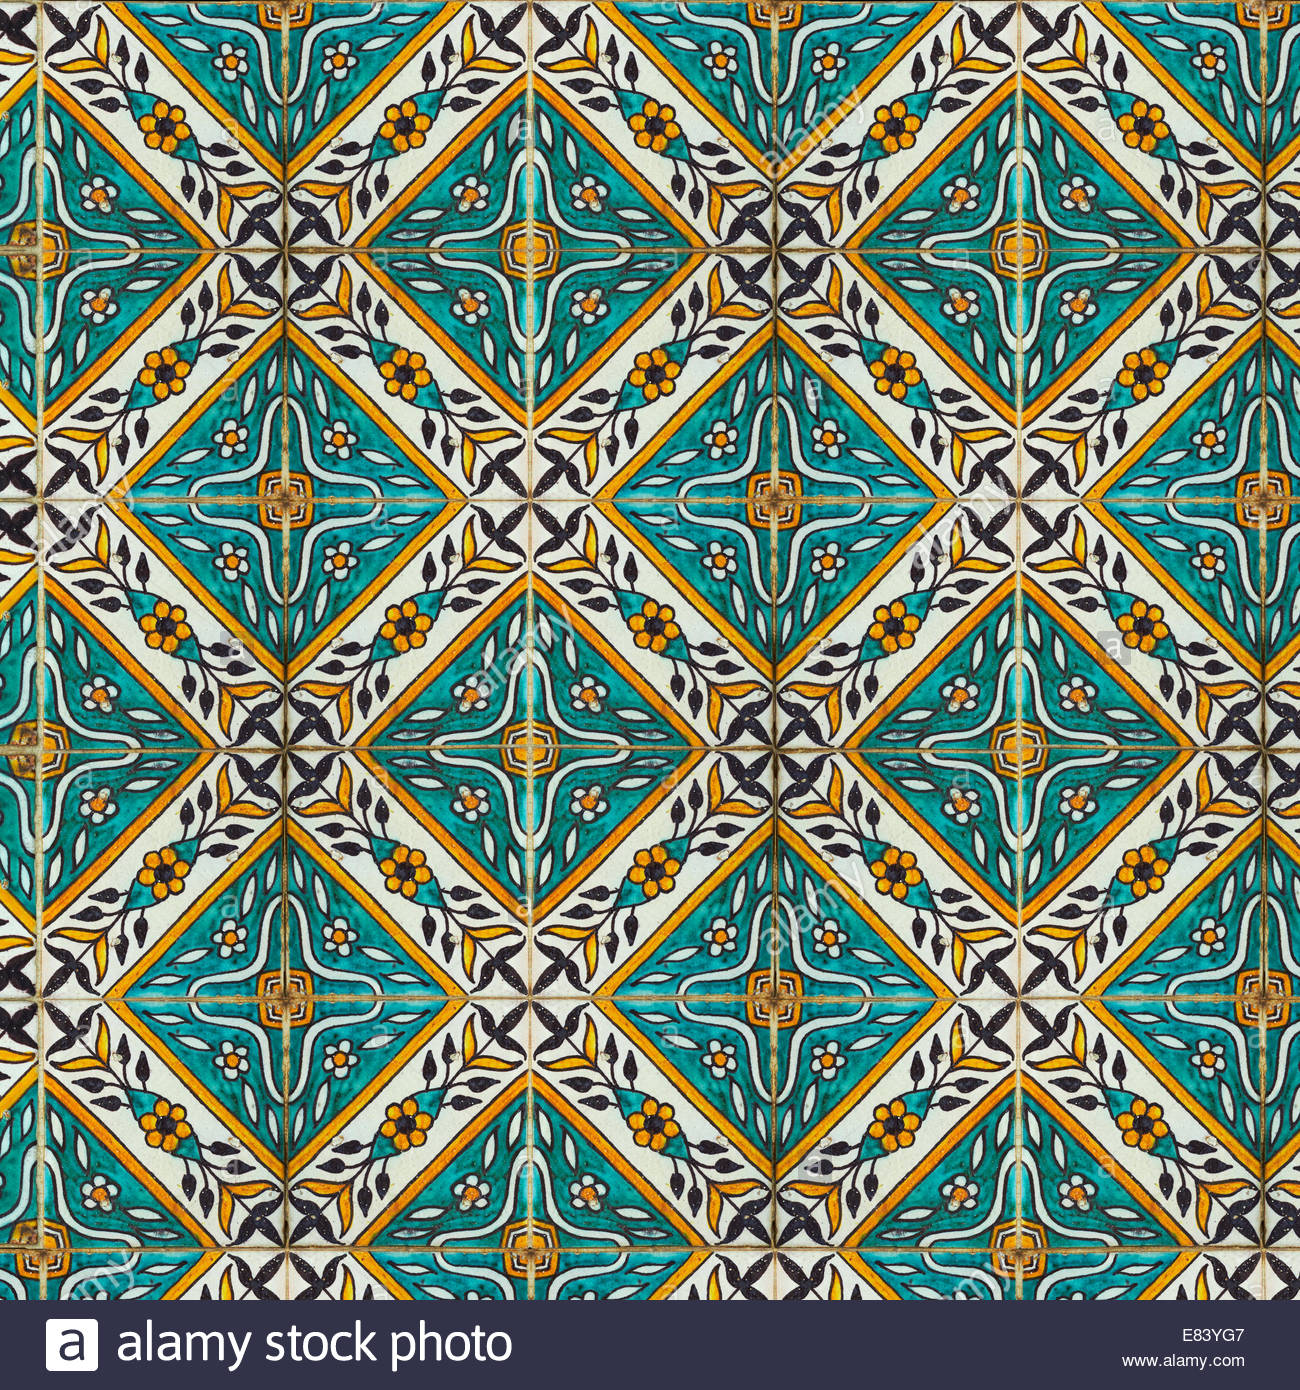 Backgrounds and textures of intricate ceramic tile design in a backgrounds and textures of intricate ceramic tile design in a repeating pattern dailygadgetfo Choice Image